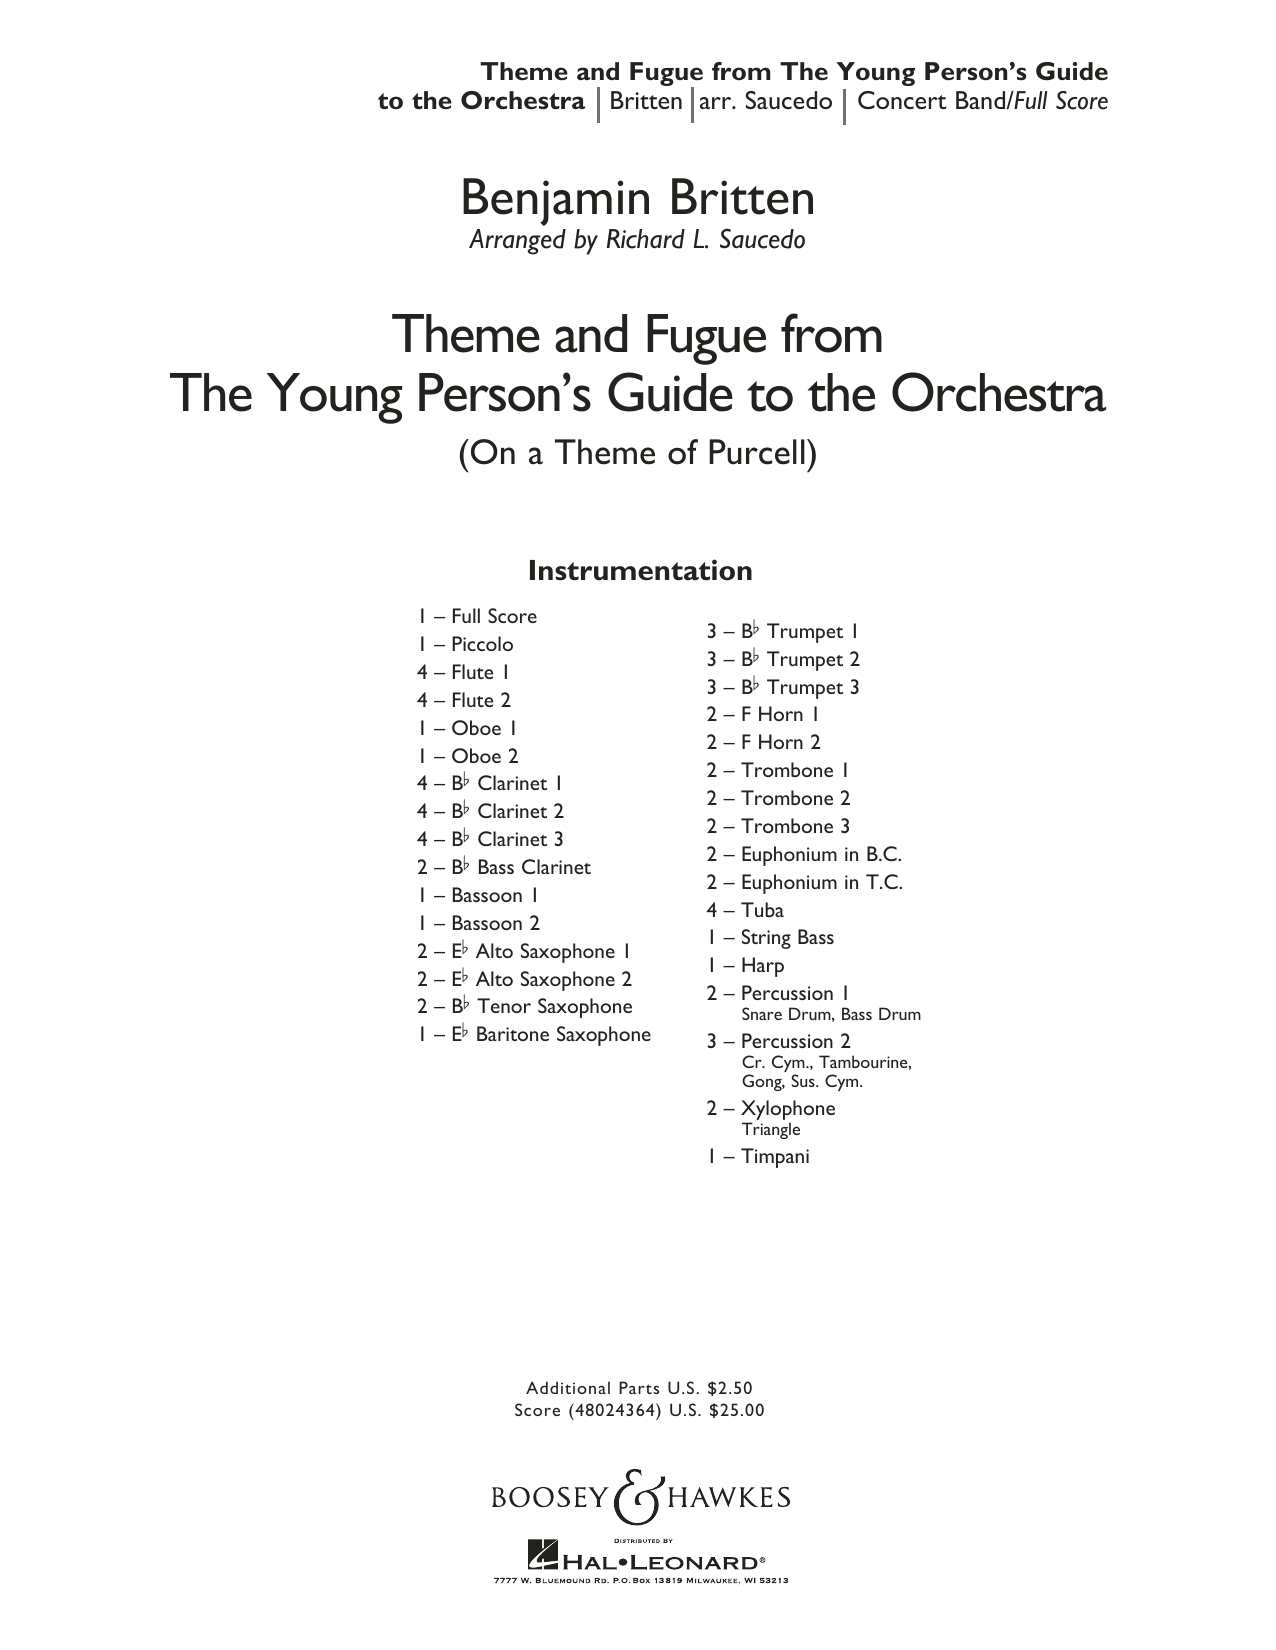 Benjamin Britten Theme and Fugue from The Young Person's Guide to the Orchestra - Conductor Score (Full Score) sheet music preview music notes and score for Concert Band including 28 page(s)